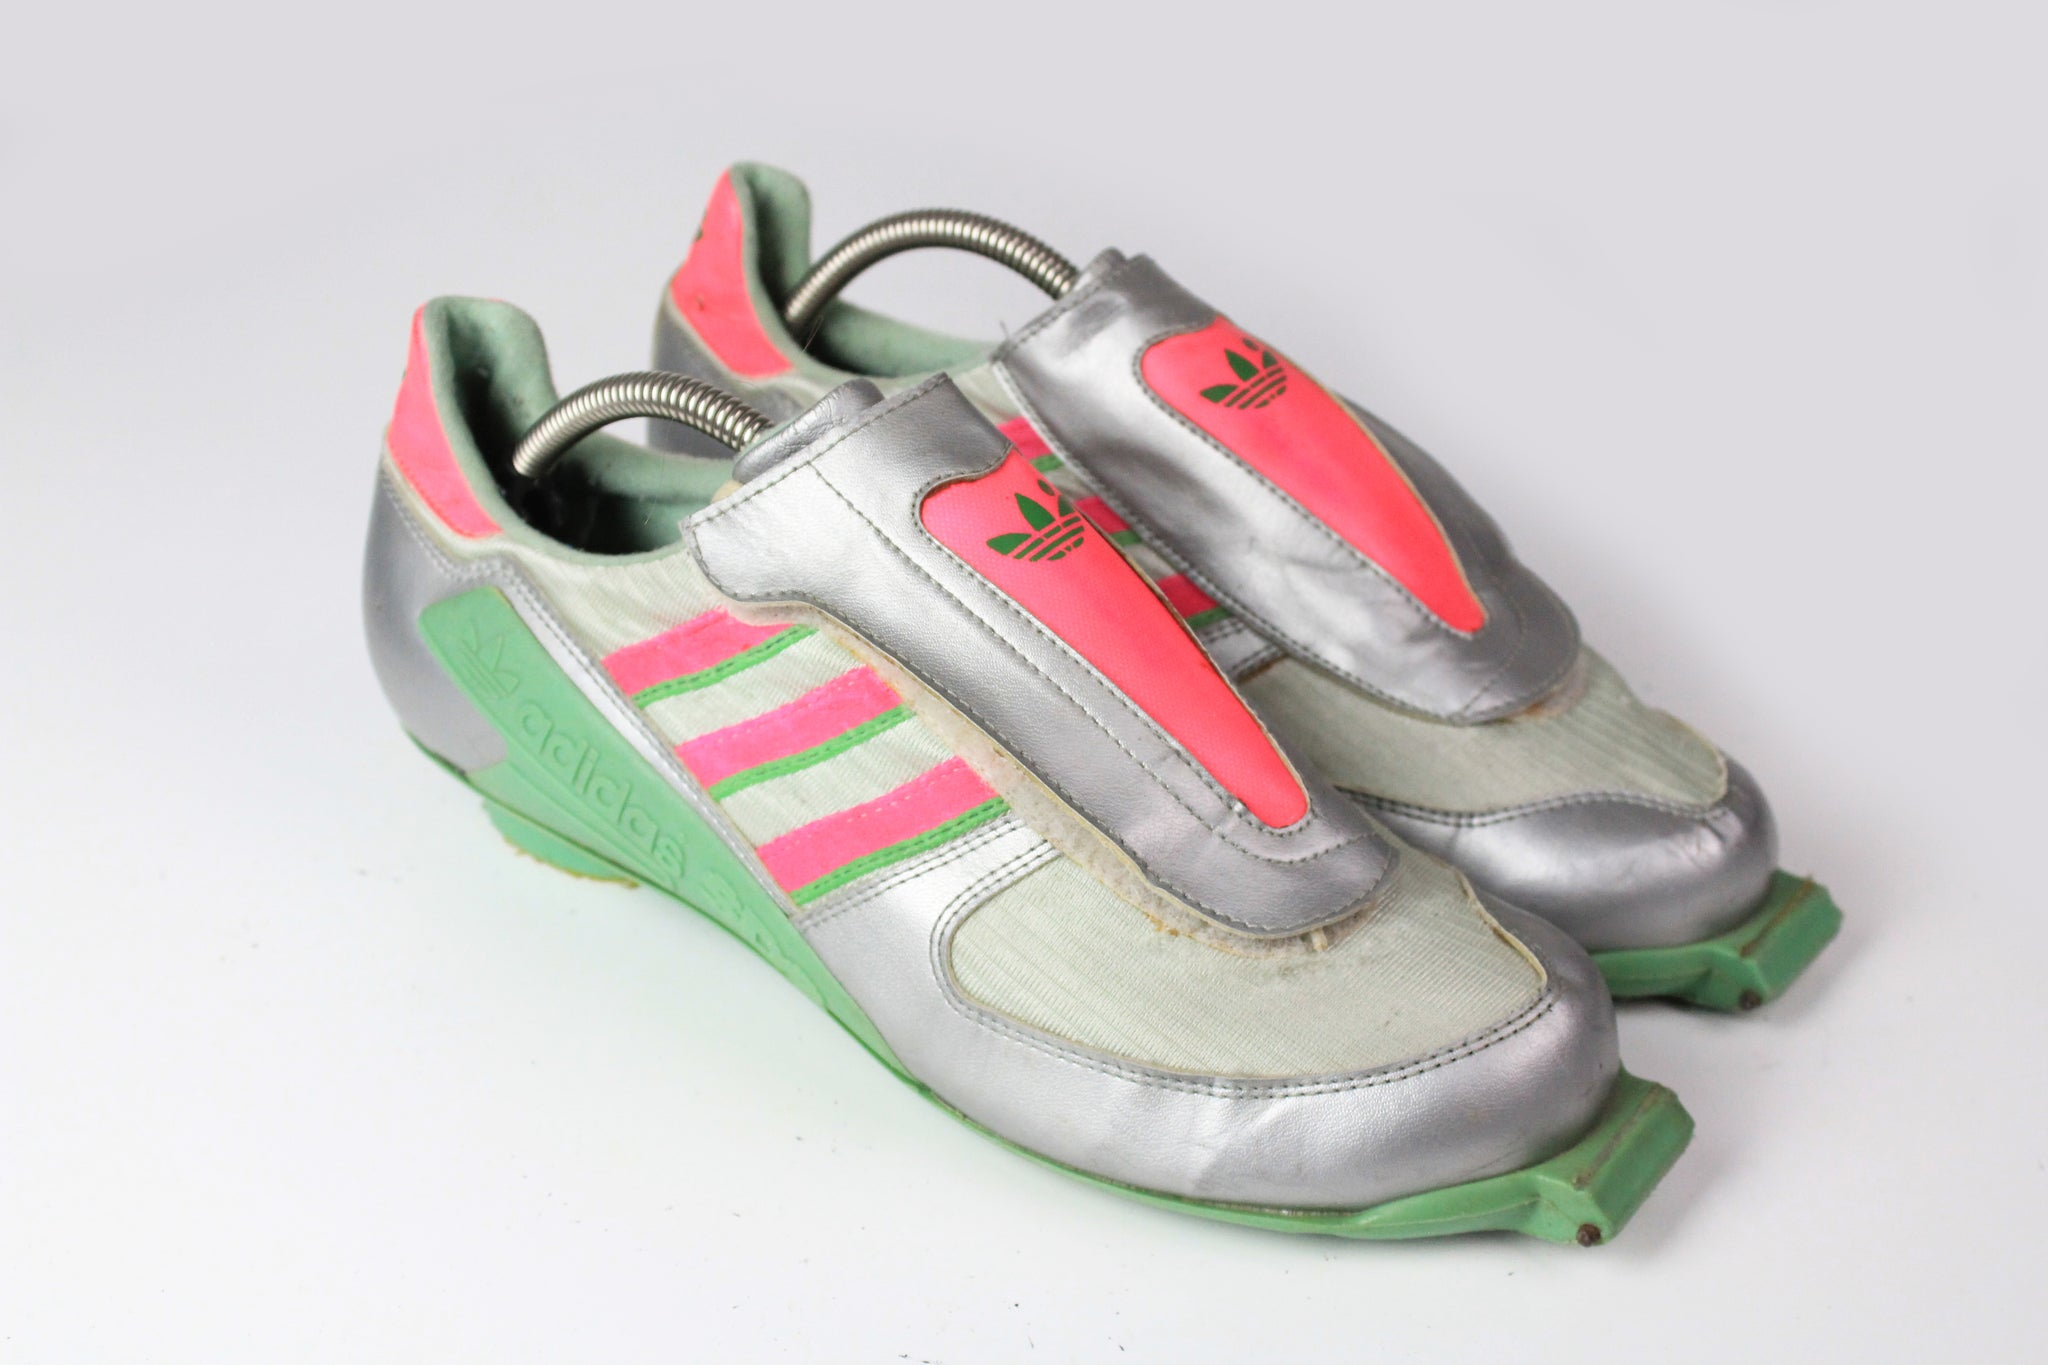 Vintage Adidas SDS Skating Shoes US 9 silver micropacers 80s made in Yugoslavia shoes